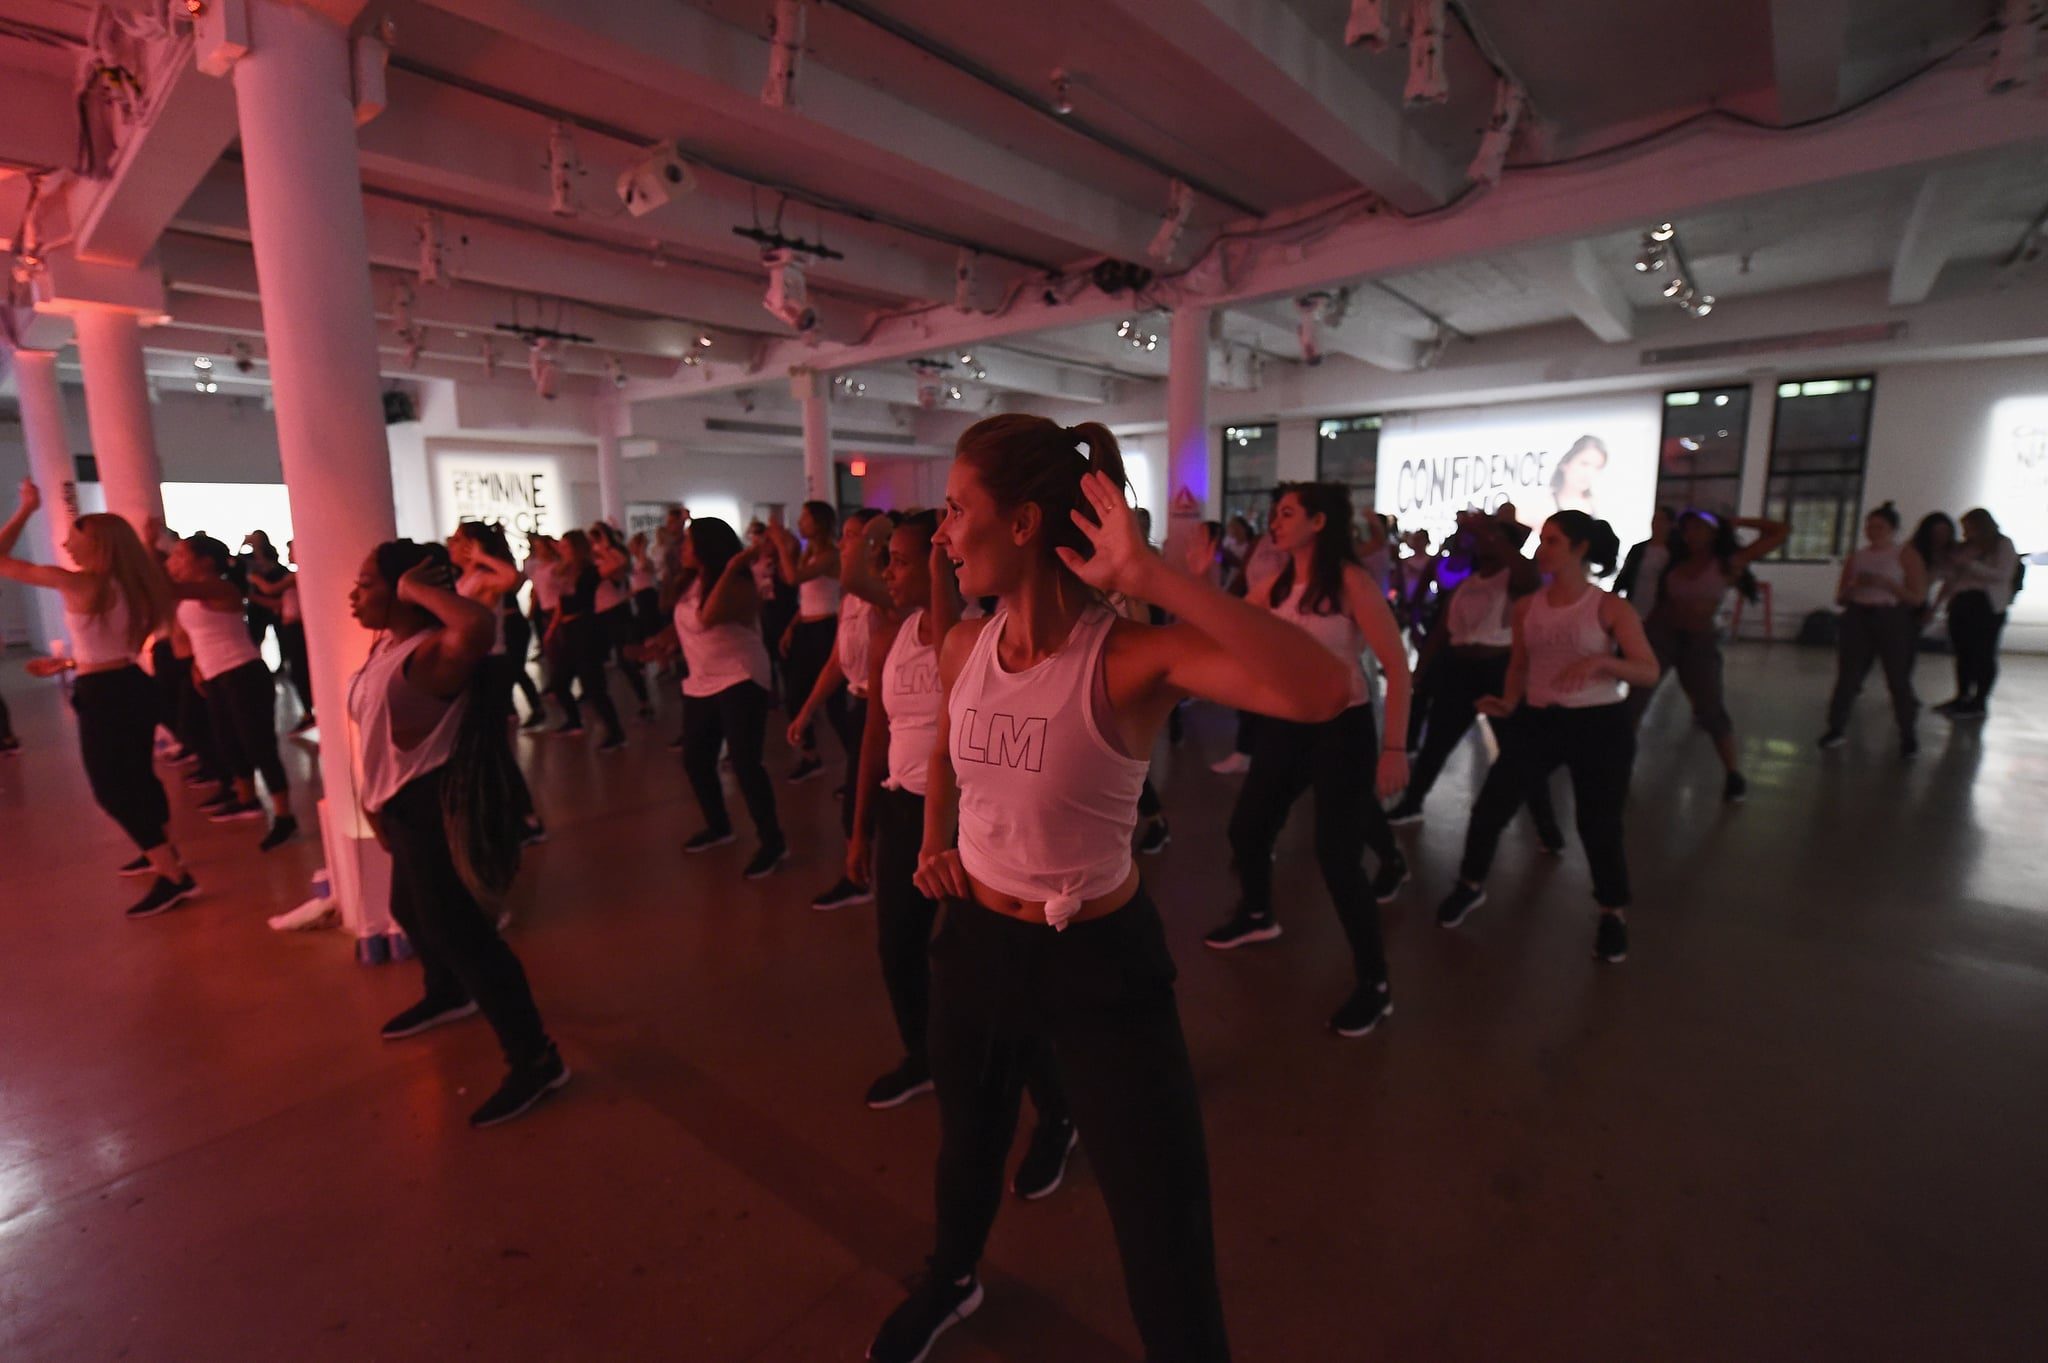 NEW YORK, NY - SEPTEMBER 27:  Guests attends as Reebok and Nina Dobrev host the Donate in Sweat NYC event, bringing together media and influencers to celebrate their shared commitment to female empowerment and showcase the newest Les Mills BODYJAM workout, at Hudson Mercantile on September 27, 2018 in New York City.  (Photo by Ilya S. Savenok/Getty Images for Reebok)